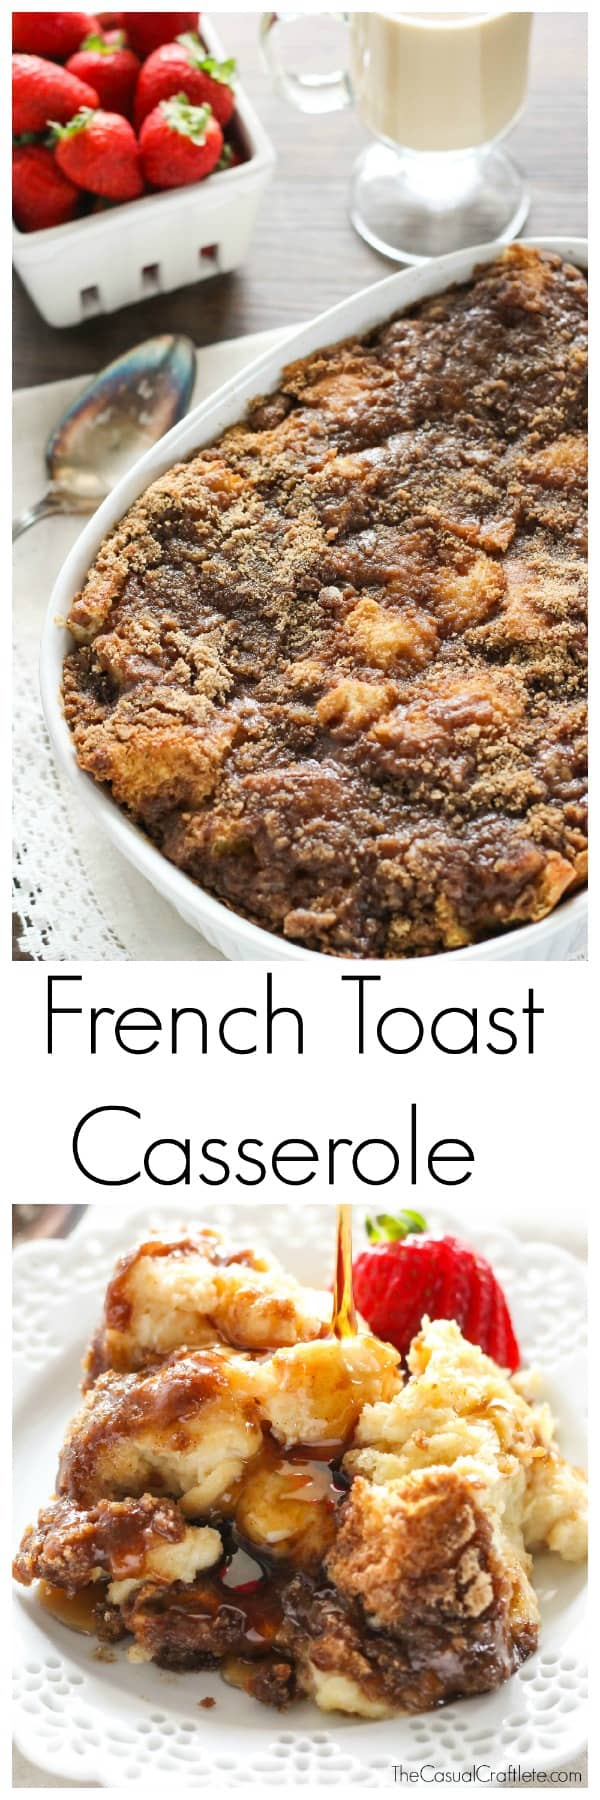 French Toast Casserole by TheCasualCraftlete.com